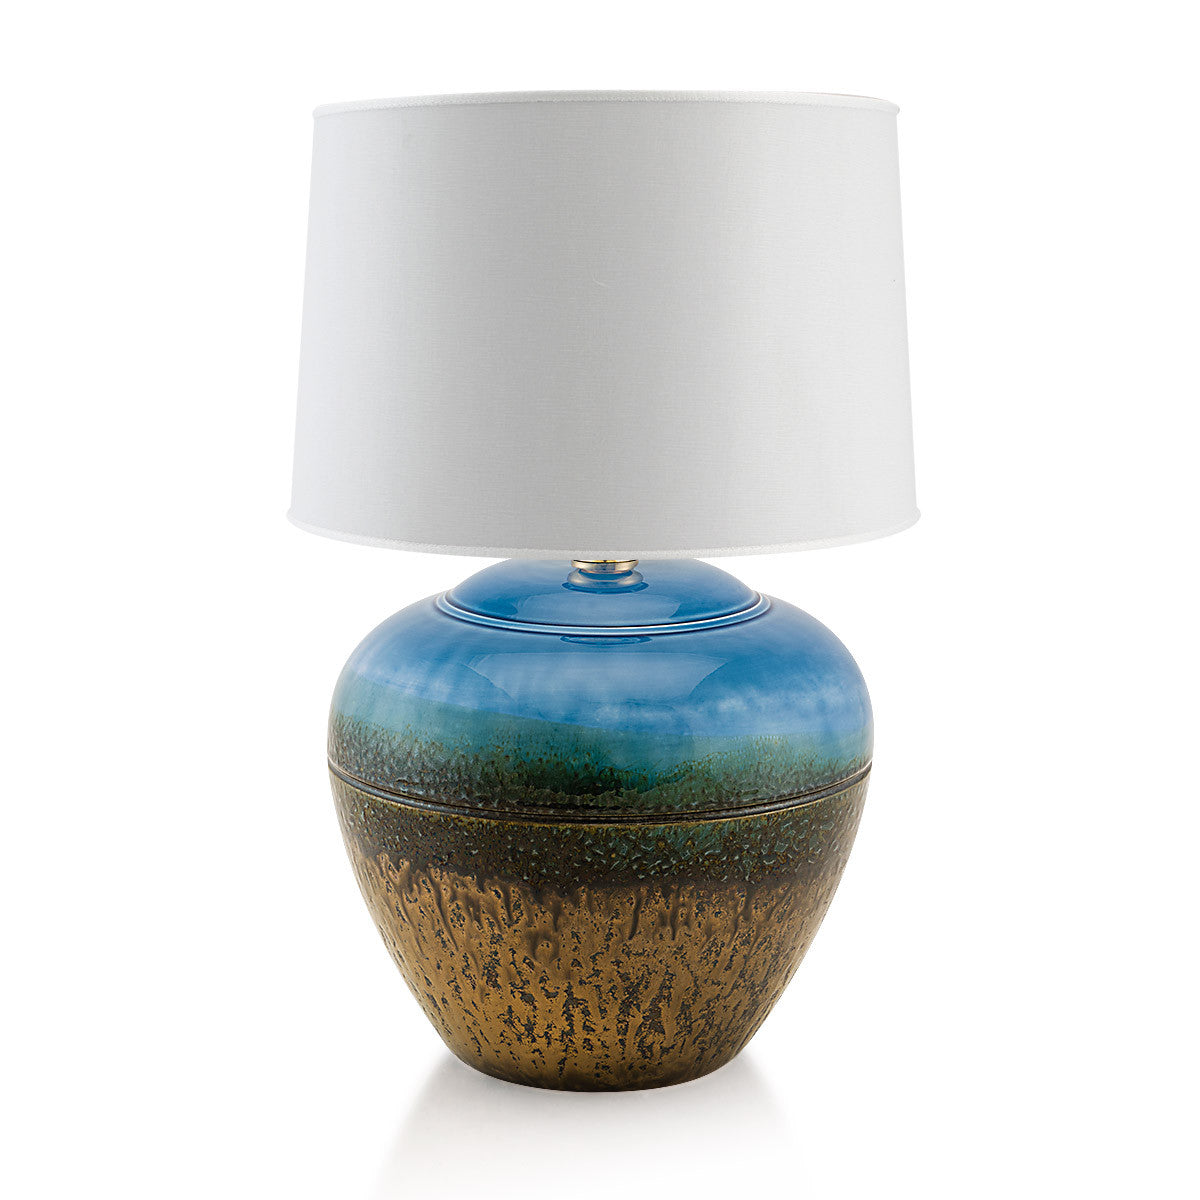 Hand painted pottery | Ceramic table lamps finish with blue color mix with burnished bronze